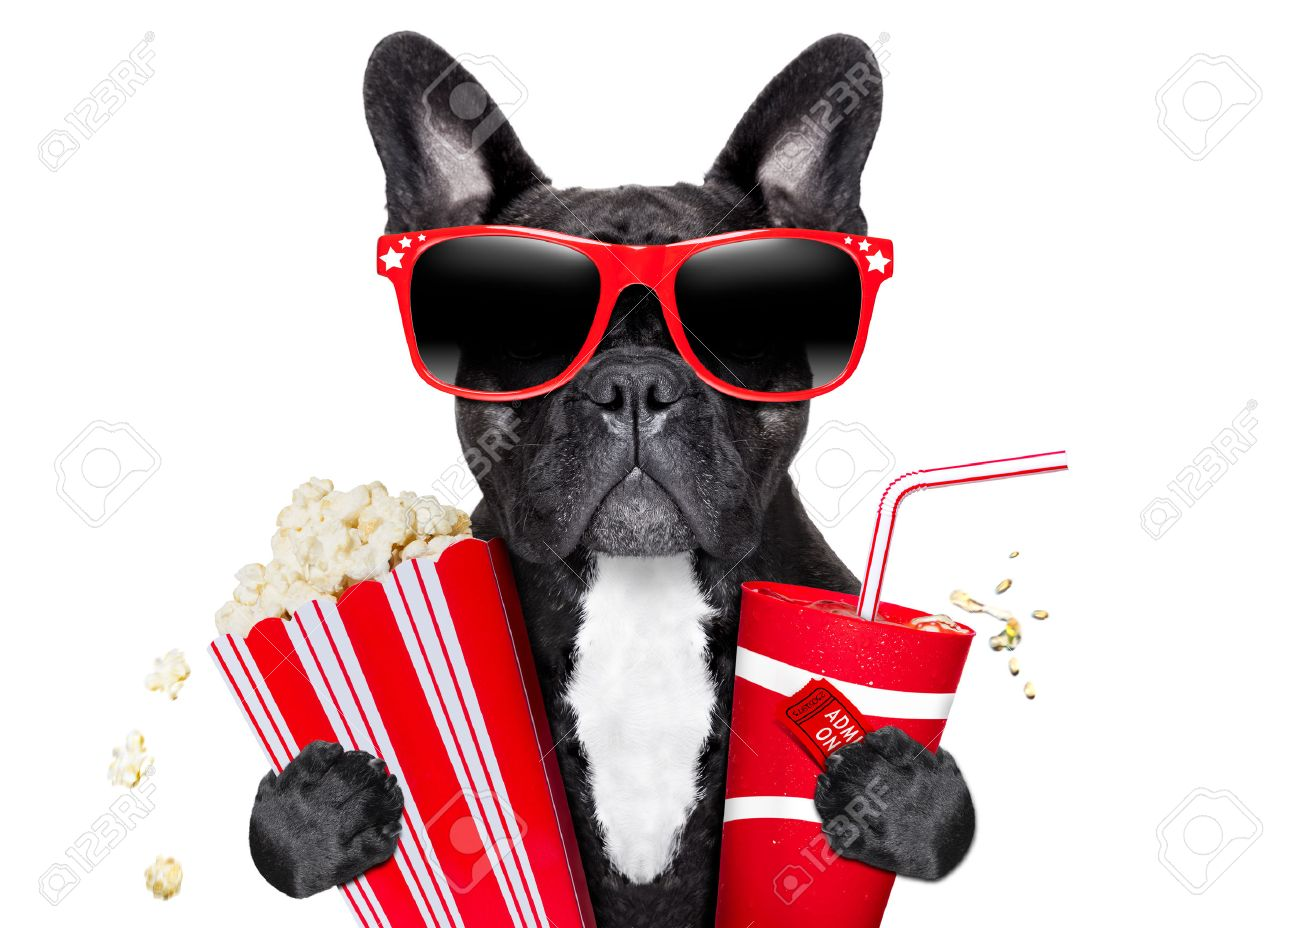 Worksheet Going To The Movies dog going to the movies with soda and glasses stock photo picture glasses